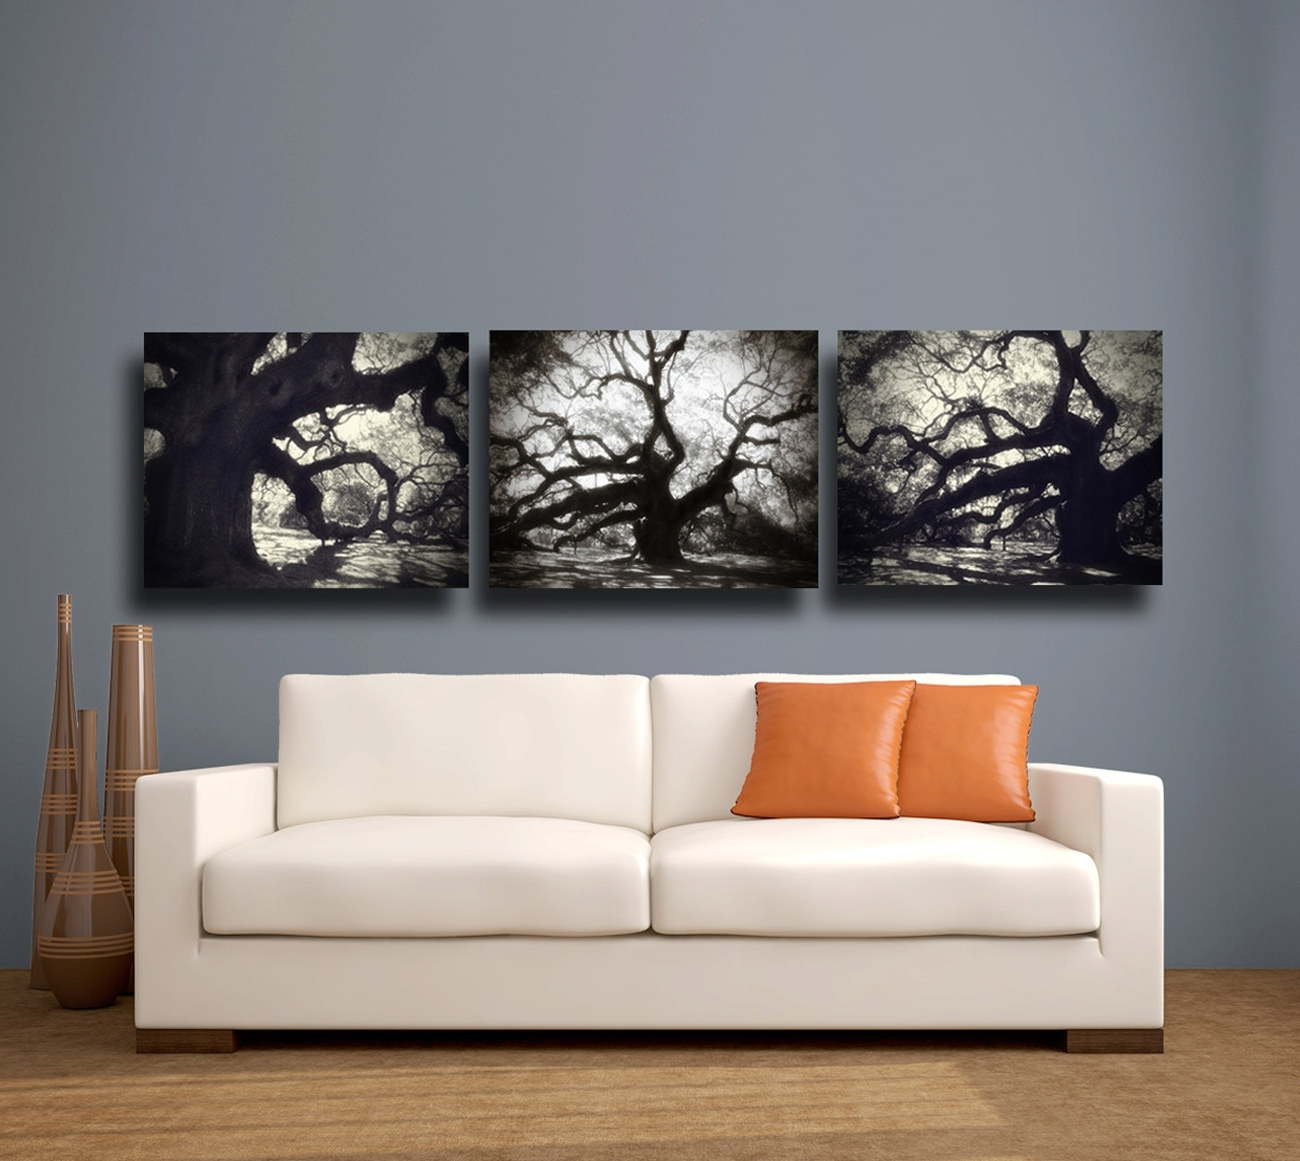 Tiger Black And White Canvas Art — Rs Floral Design : The Beauty With Most Up To Date Cheap Black And White Wall Art (View 13 of 15)